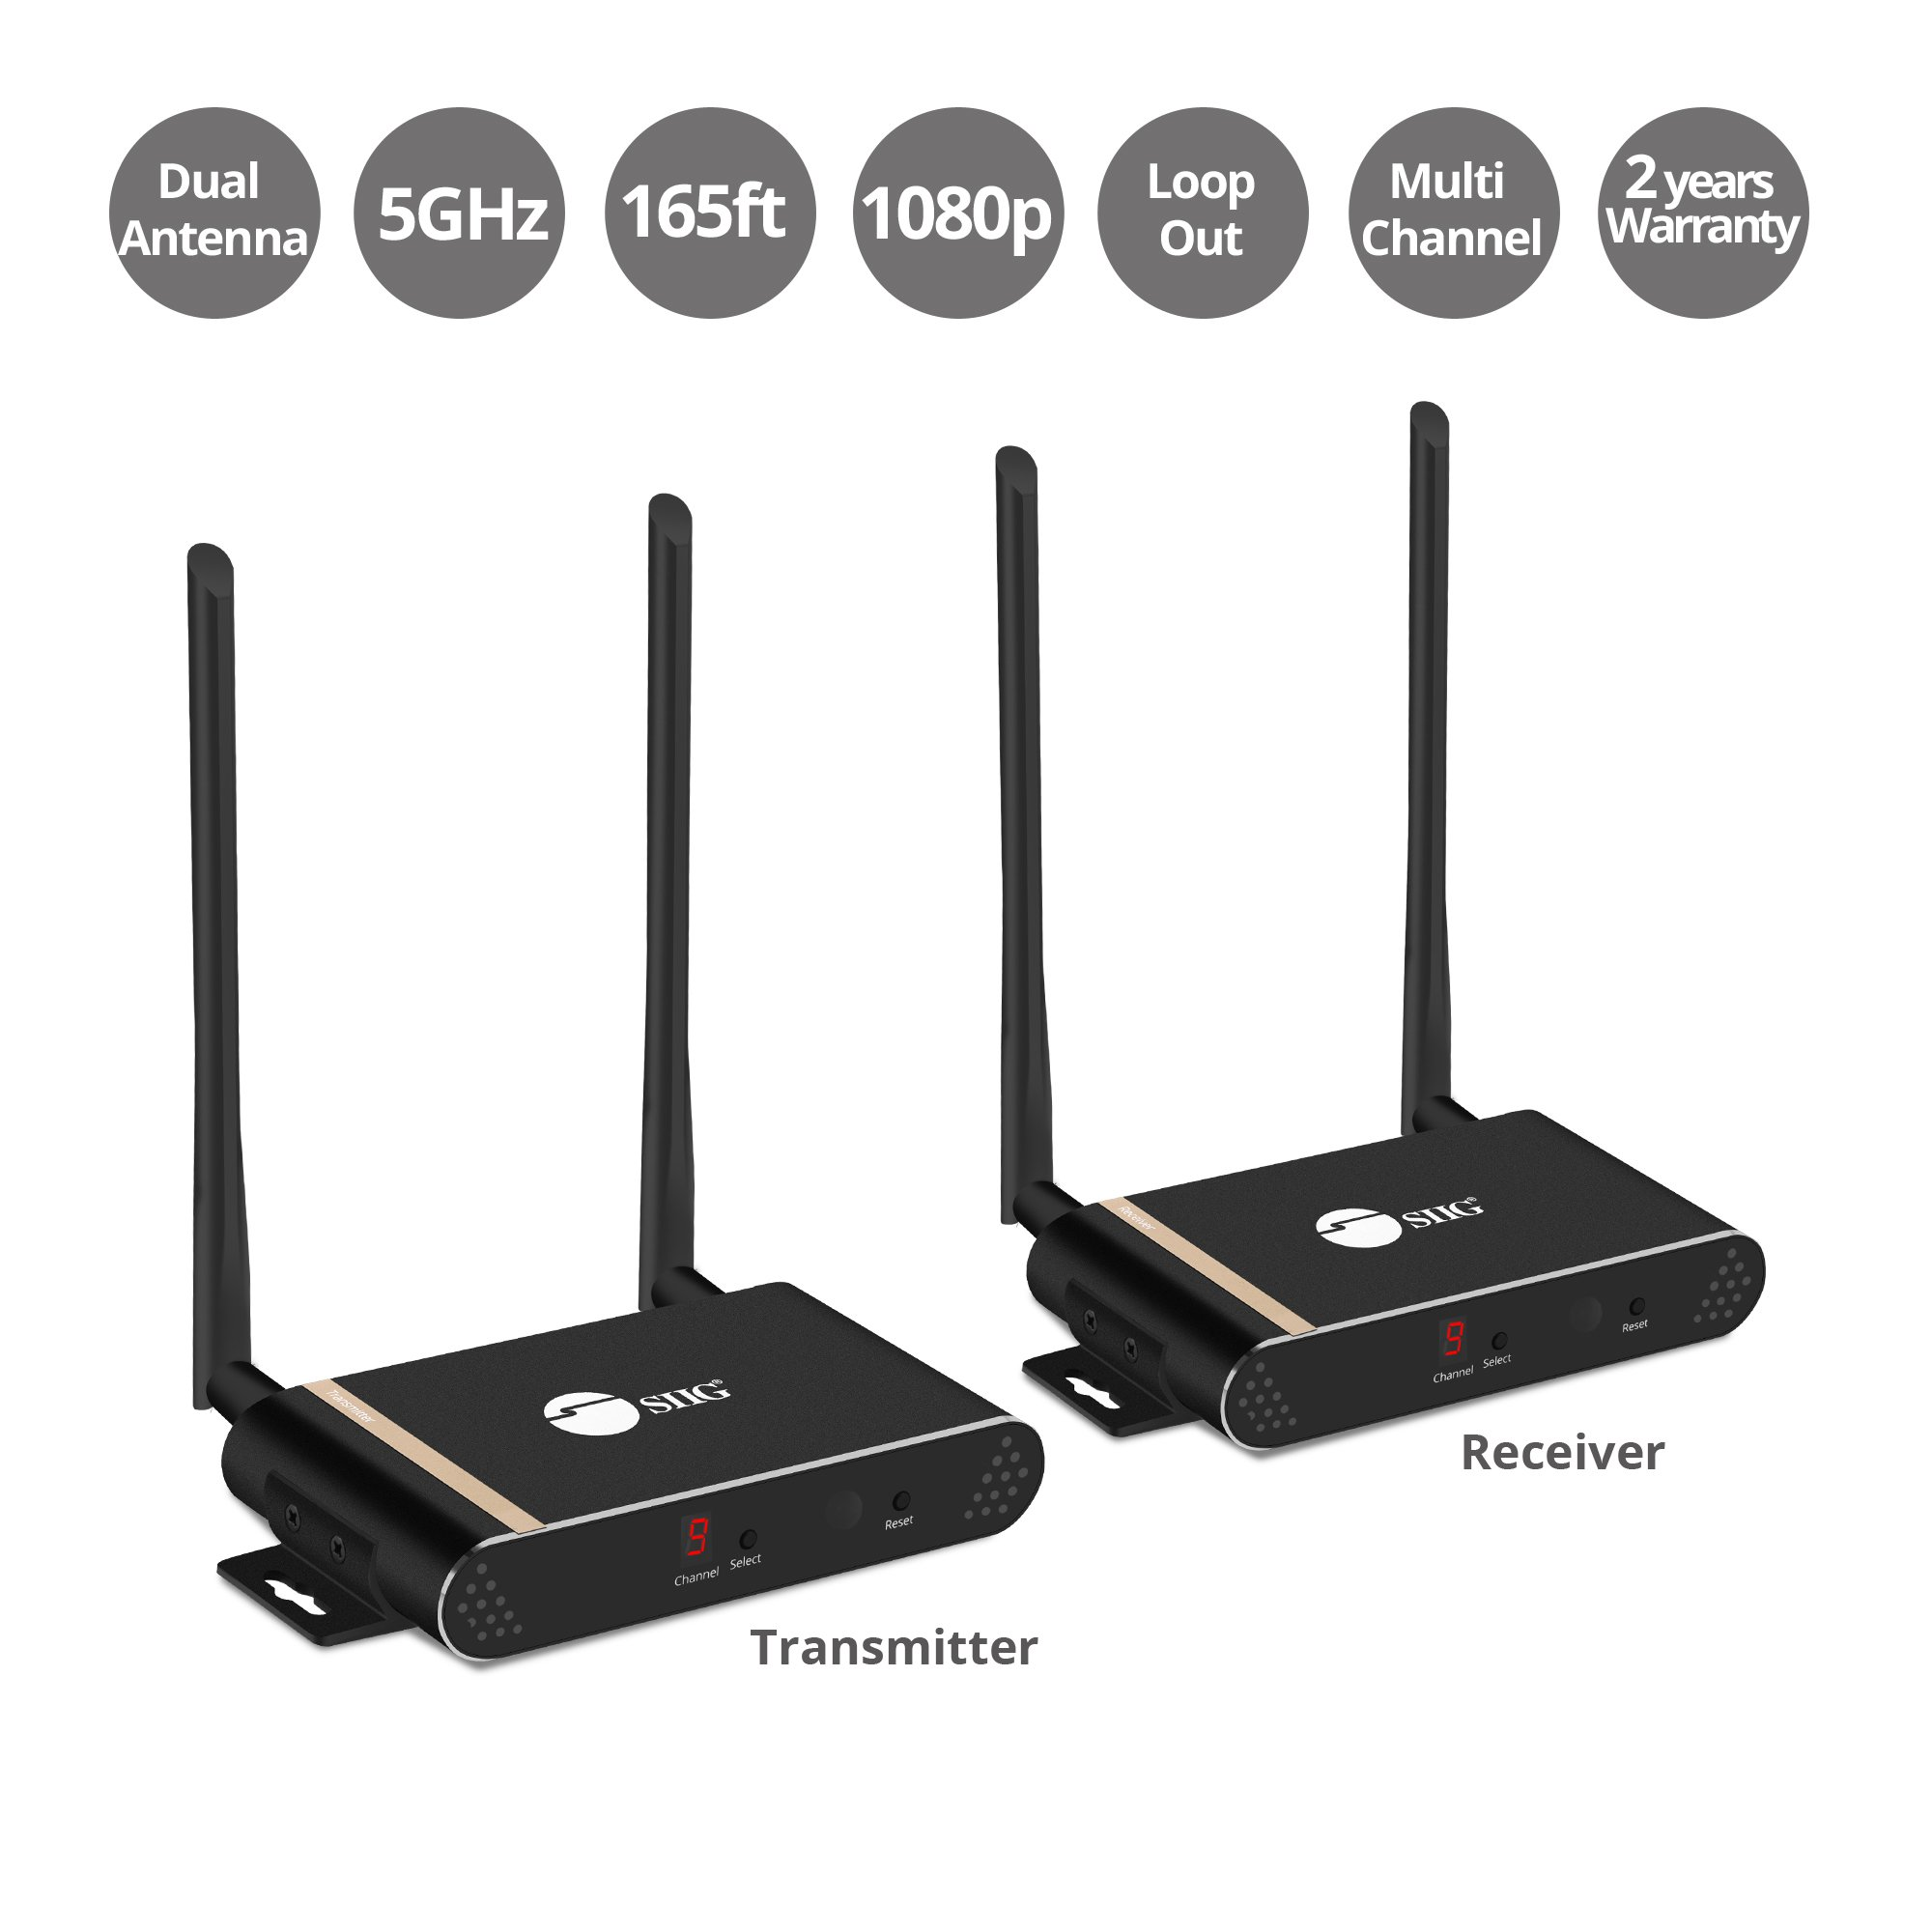 SIIG Dual Antenna Wireless Multi-Channel Expandable HDMI Extender with Loop-out Kit - 165ft/50m - up to 2-Transmitters x 2 Receivers Matrix - 10 Channels - up to 1080p Full HD with IR & Remote Control by SIIG